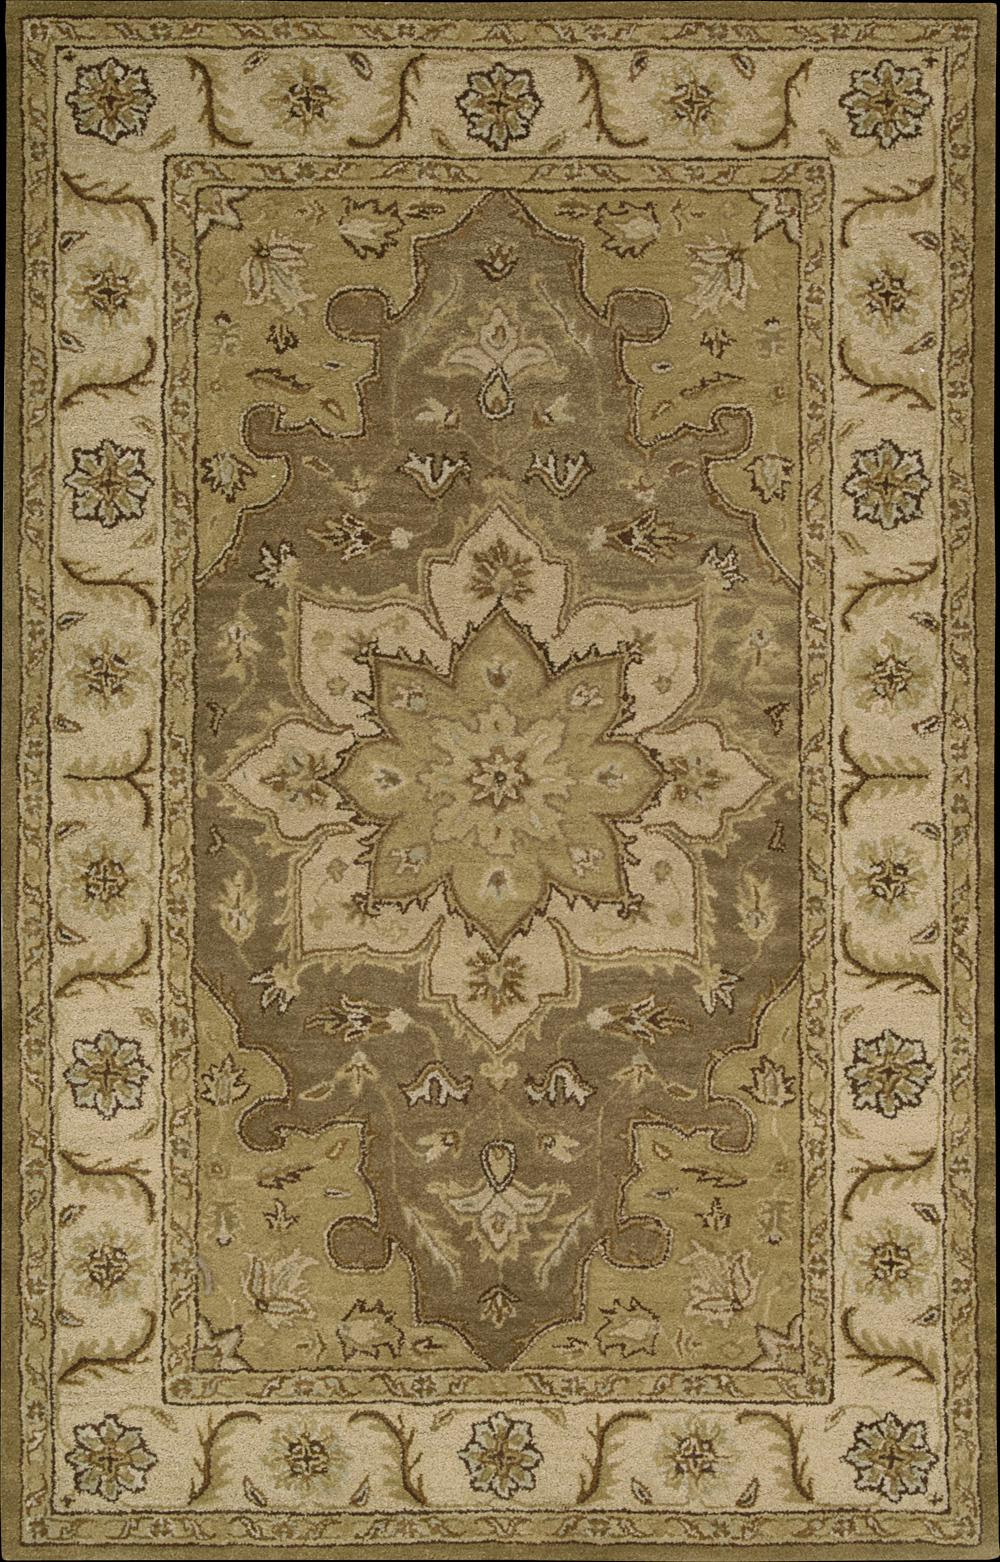 Nourison India House Area Rug 5' x 8' - Item Number: 28885